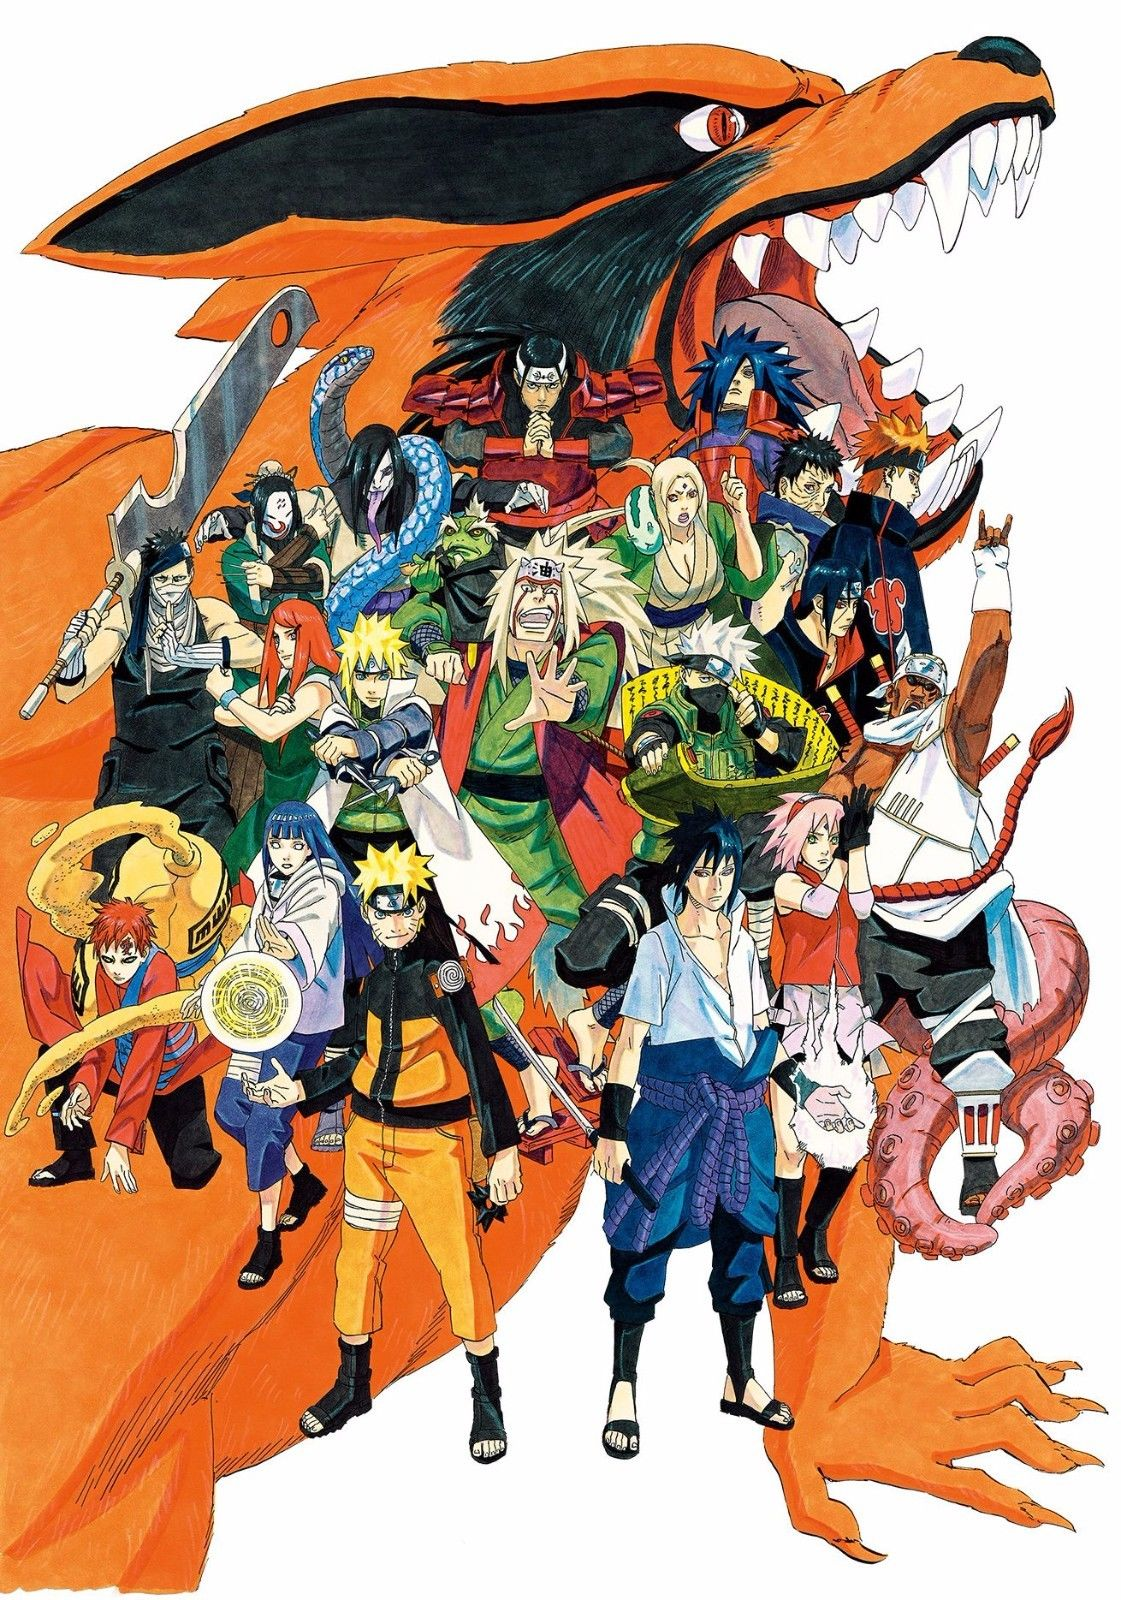 2 Sizes Available Nickelodeon Teen Kids NARUTO SHIPPUDEN POSTER 12